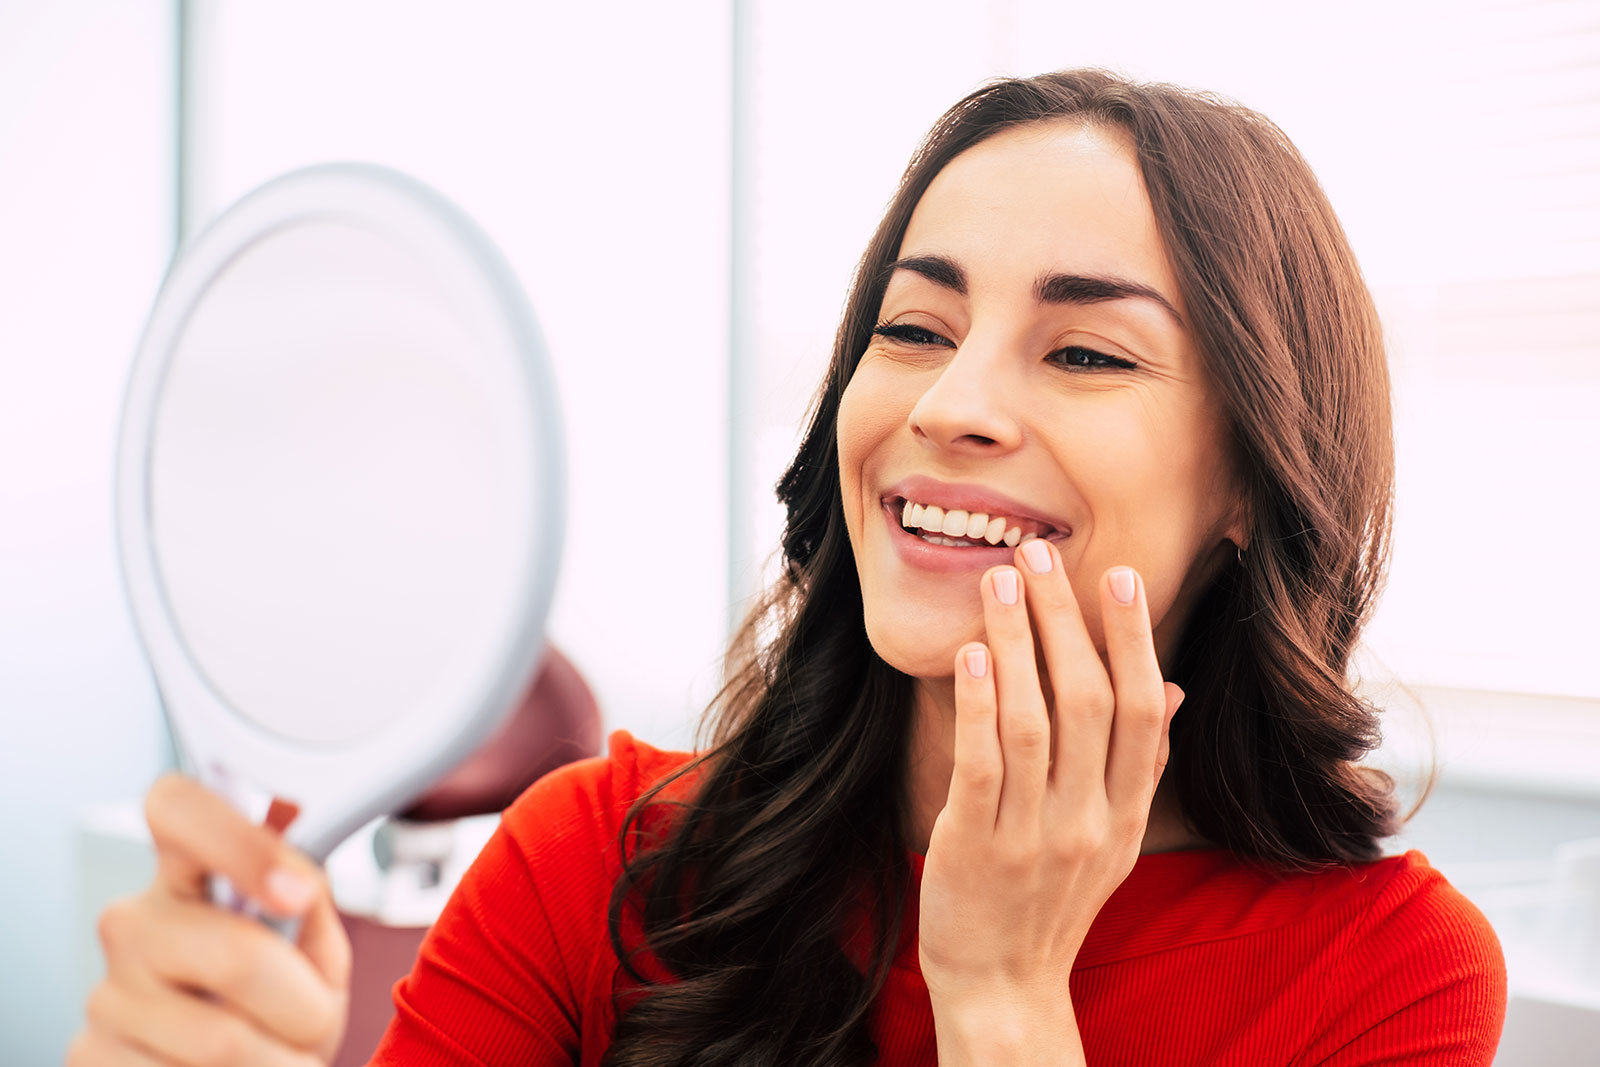 Fabulous woman clothed in red sweater, with curly long hair is holding a mirror for looking through the final work of dental doctor